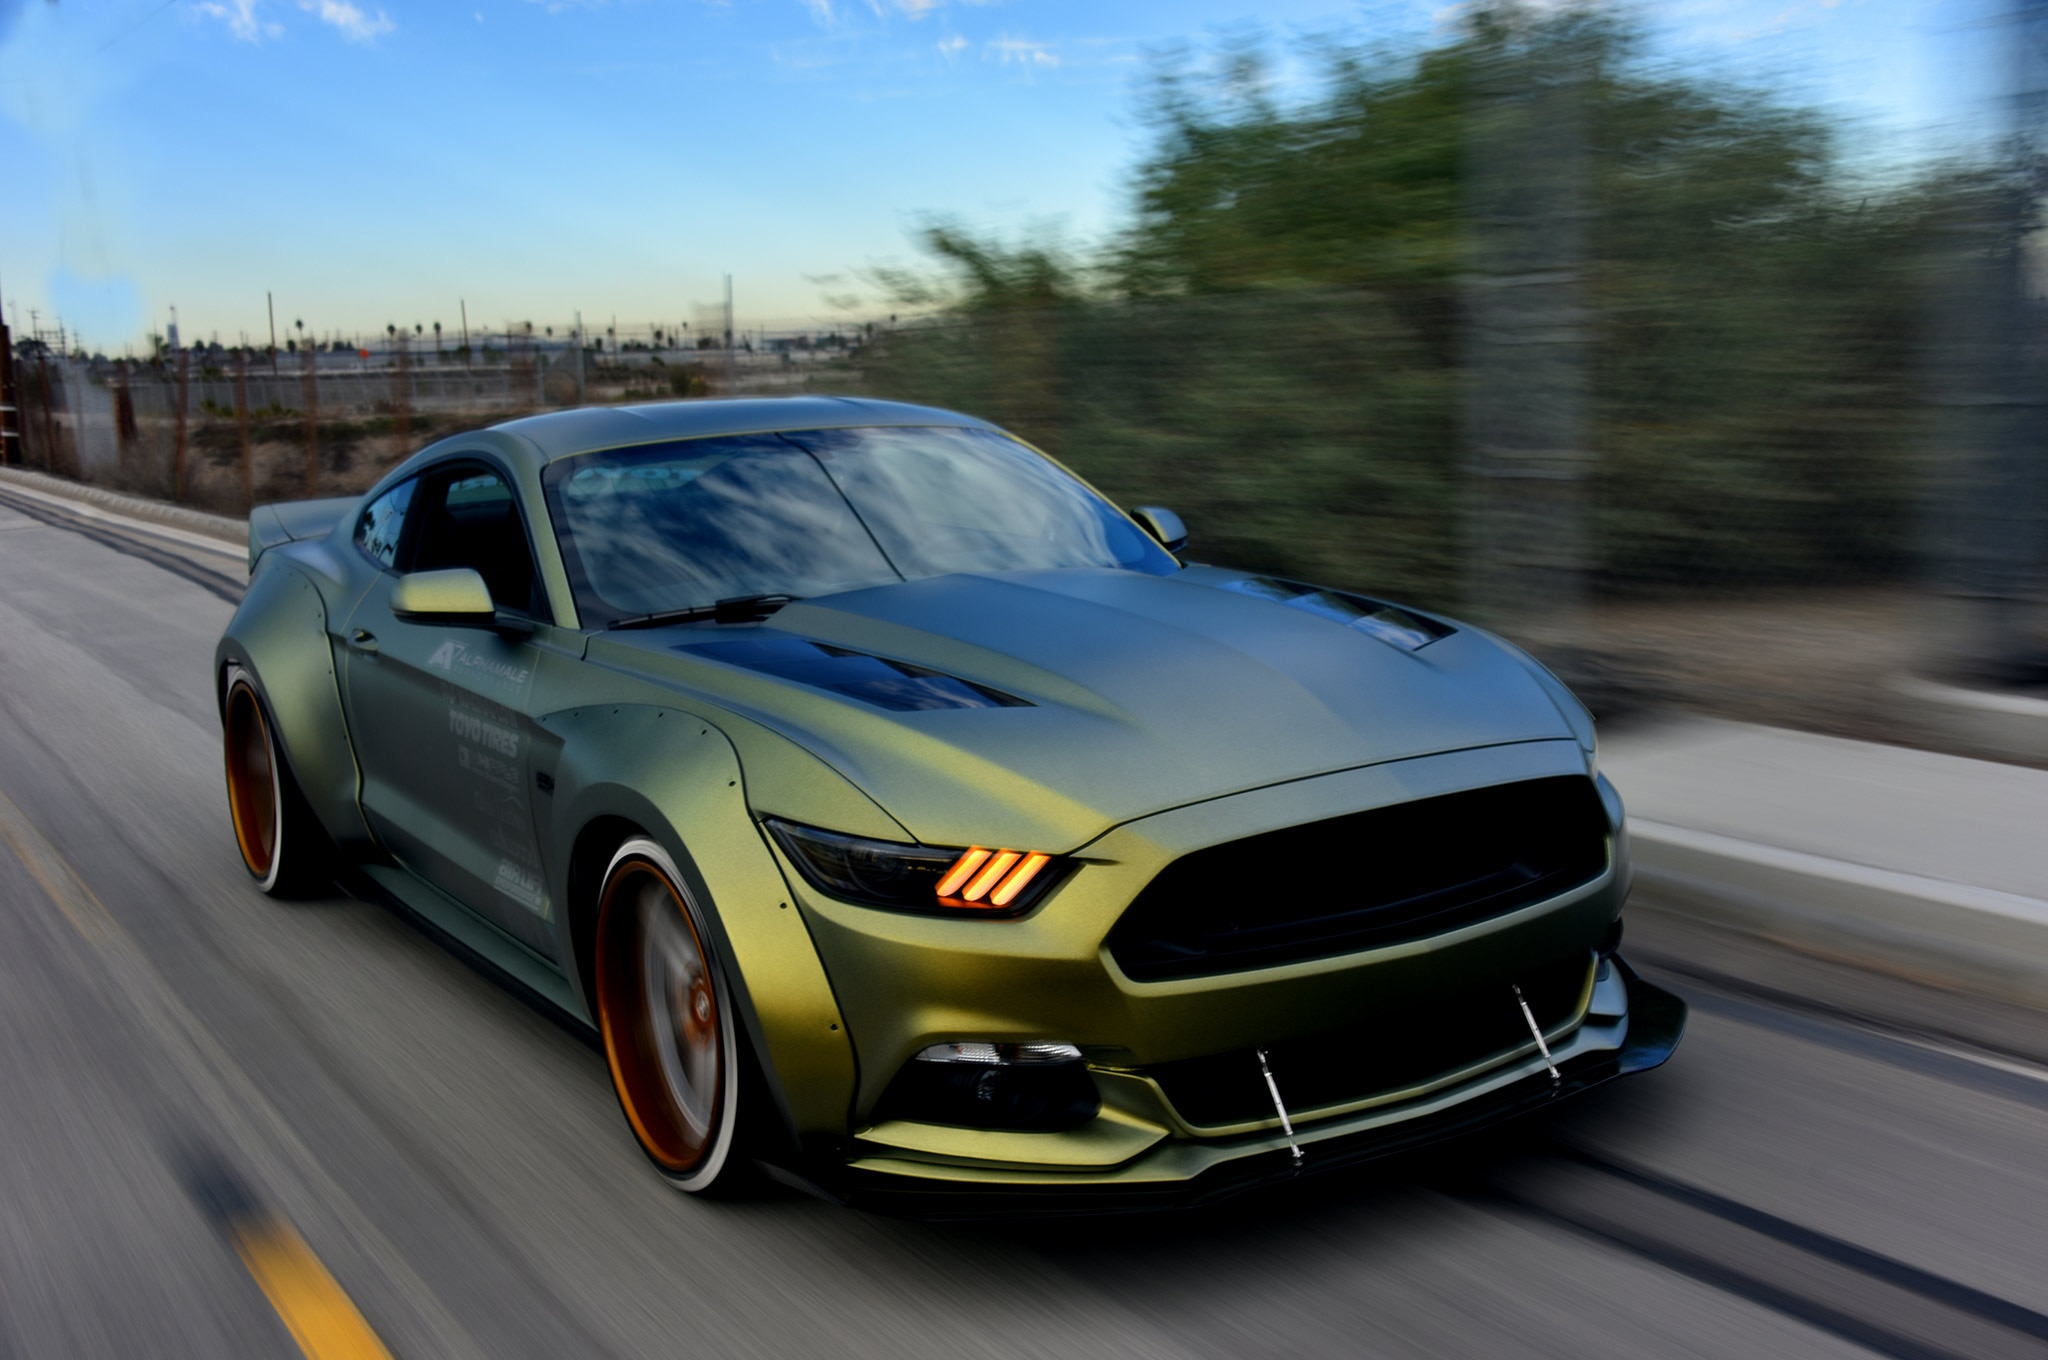 Robbie Bryant S 2016 Widebody Mustang S550 Is A Stirrer An Agitator